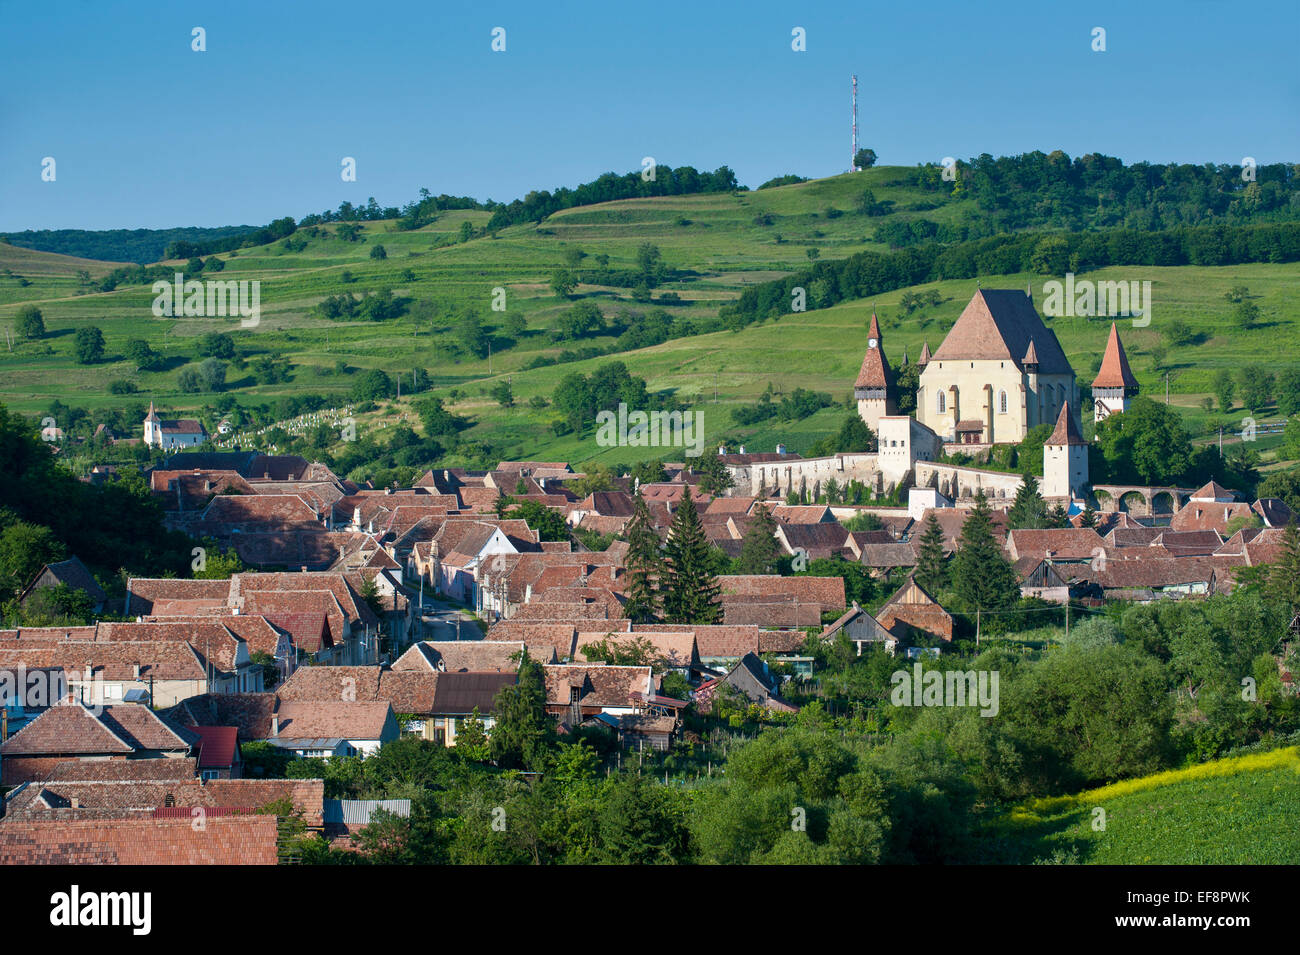 Village with fortified Saxonian churches, UNESCO World Heritage Site, Biertan, Romania - Stock Image